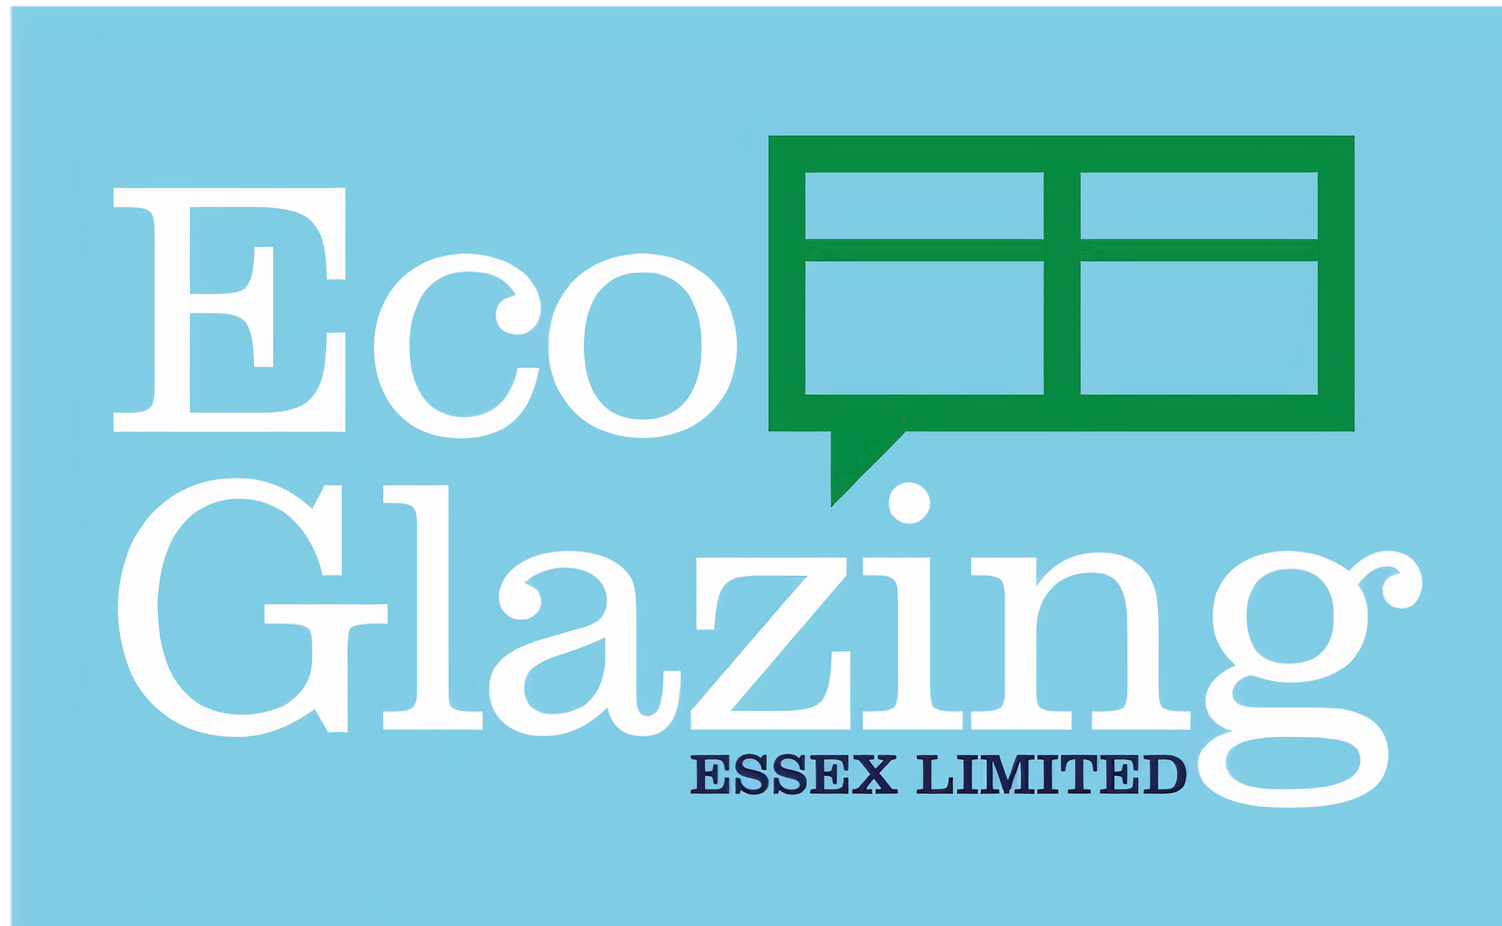 Eco Glazing Essex Limited